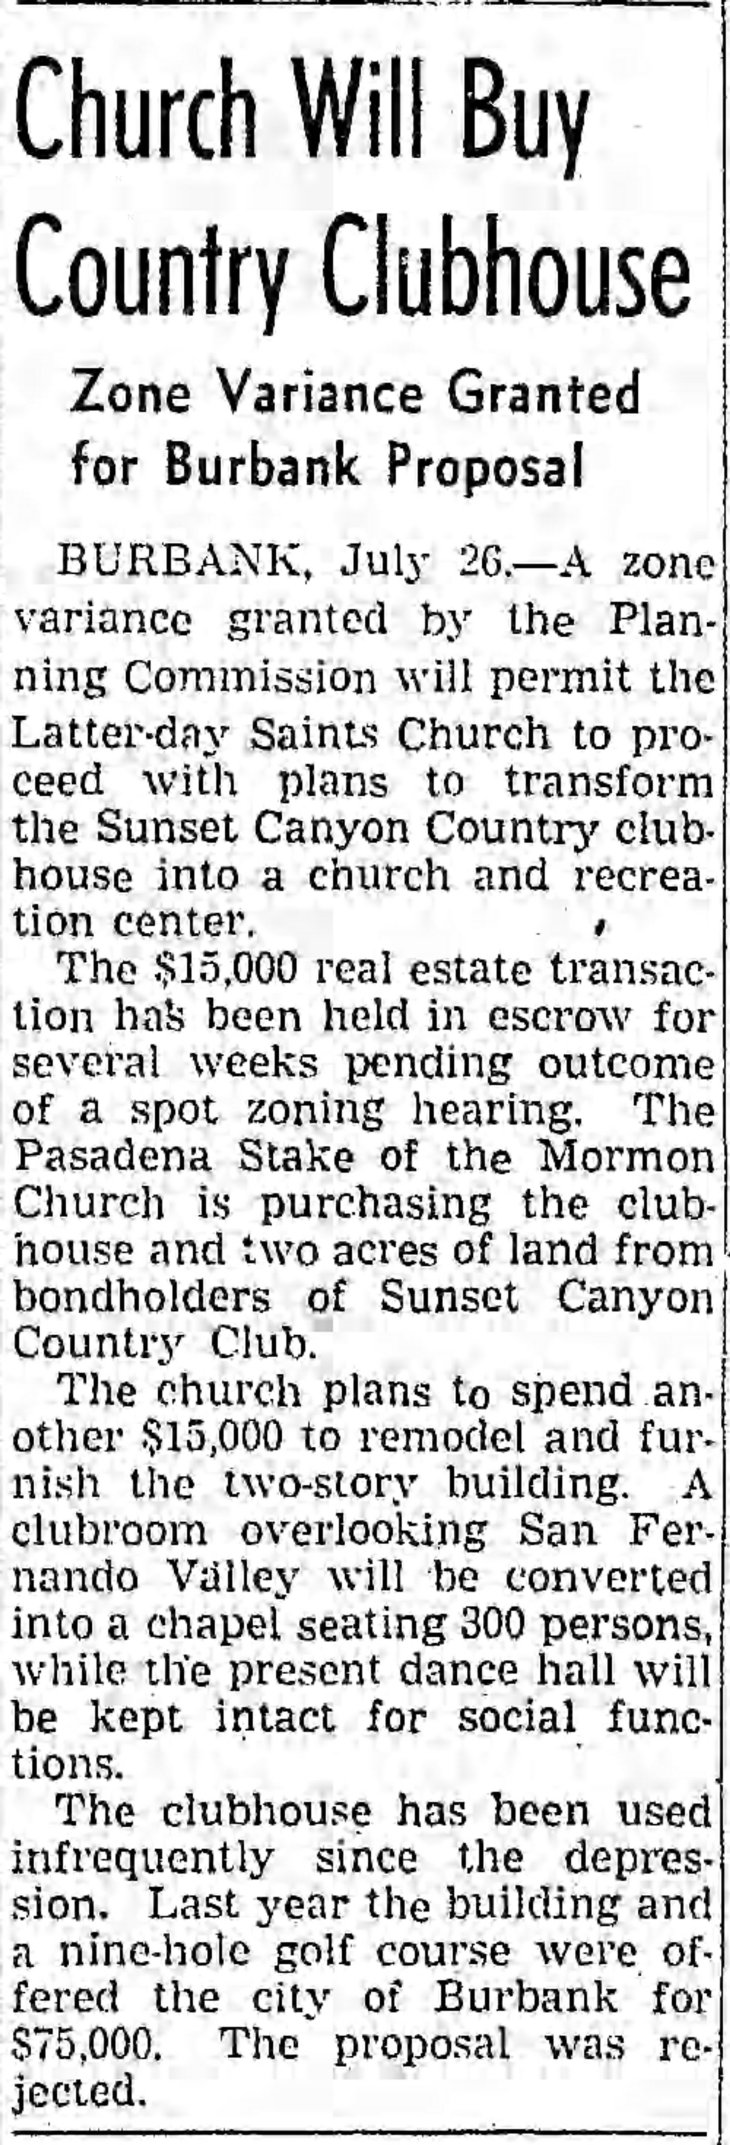 The_Los_Angeles_Times_Thu__Jul_27__1939_